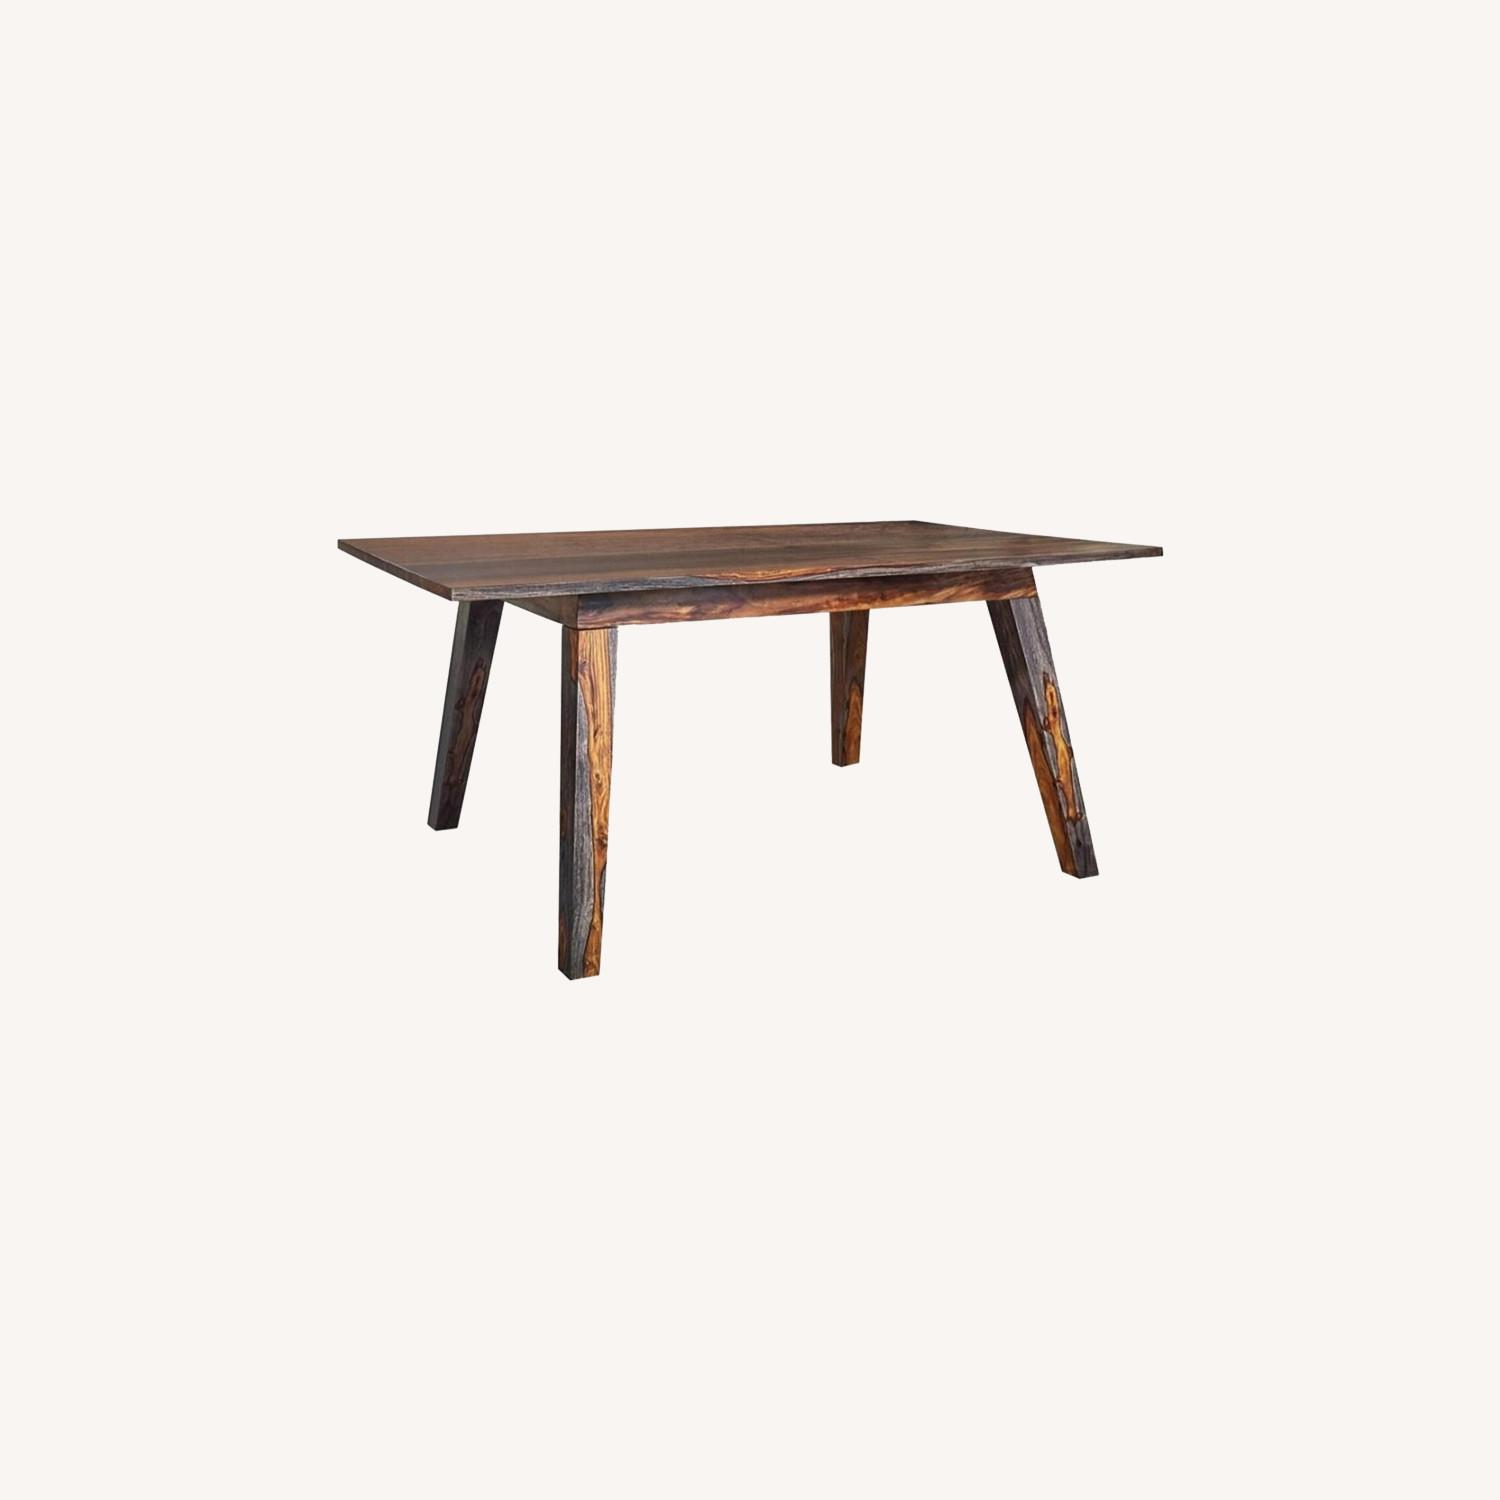 Dining Table Crafted In Grey W/ White Wood Grain - image-3